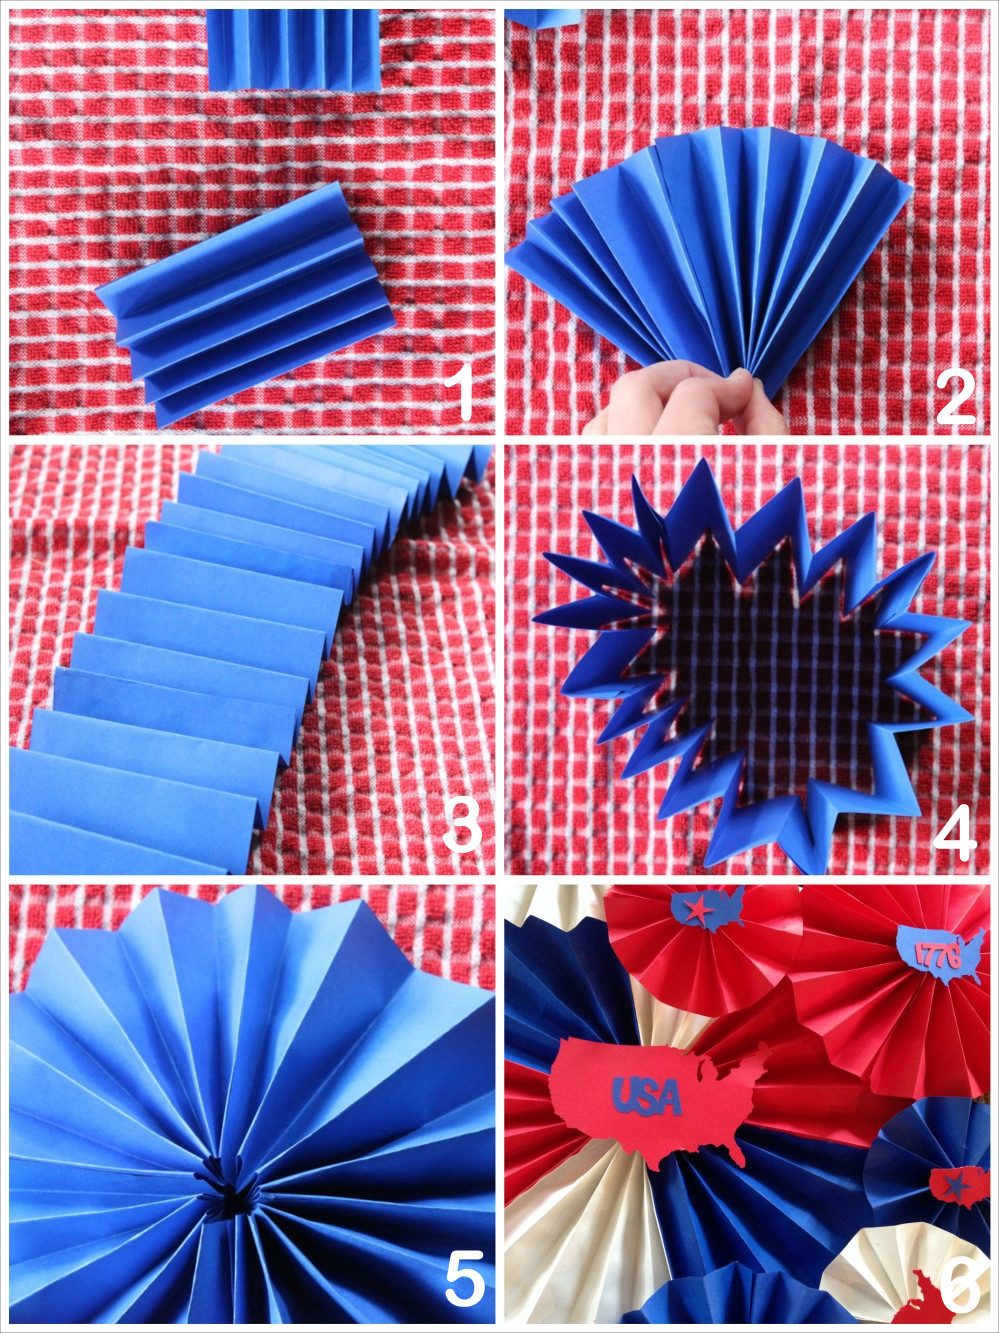 Diy Fan  DIY Paper Stars and Fans to Decorate for the 4th of July